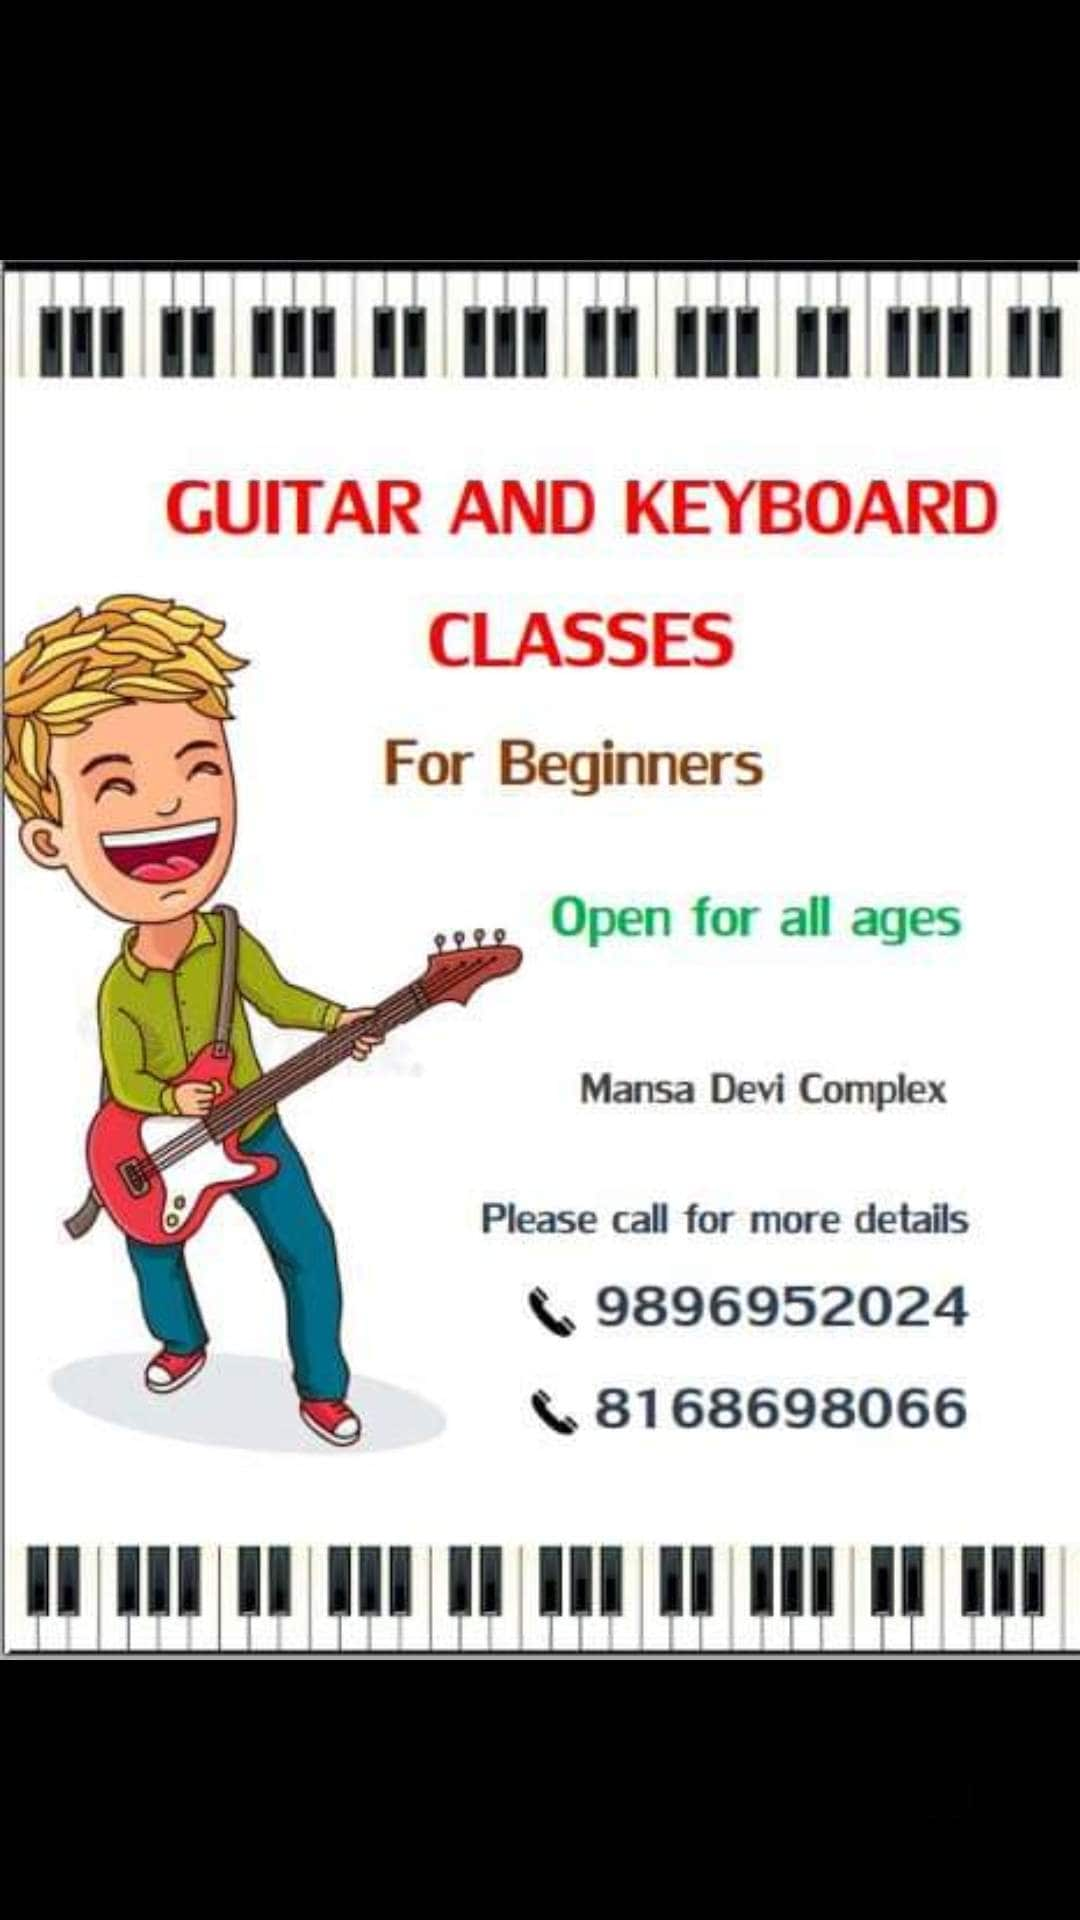 Top 100 Music Classes For Gospel Piano At Home in Chandigarh